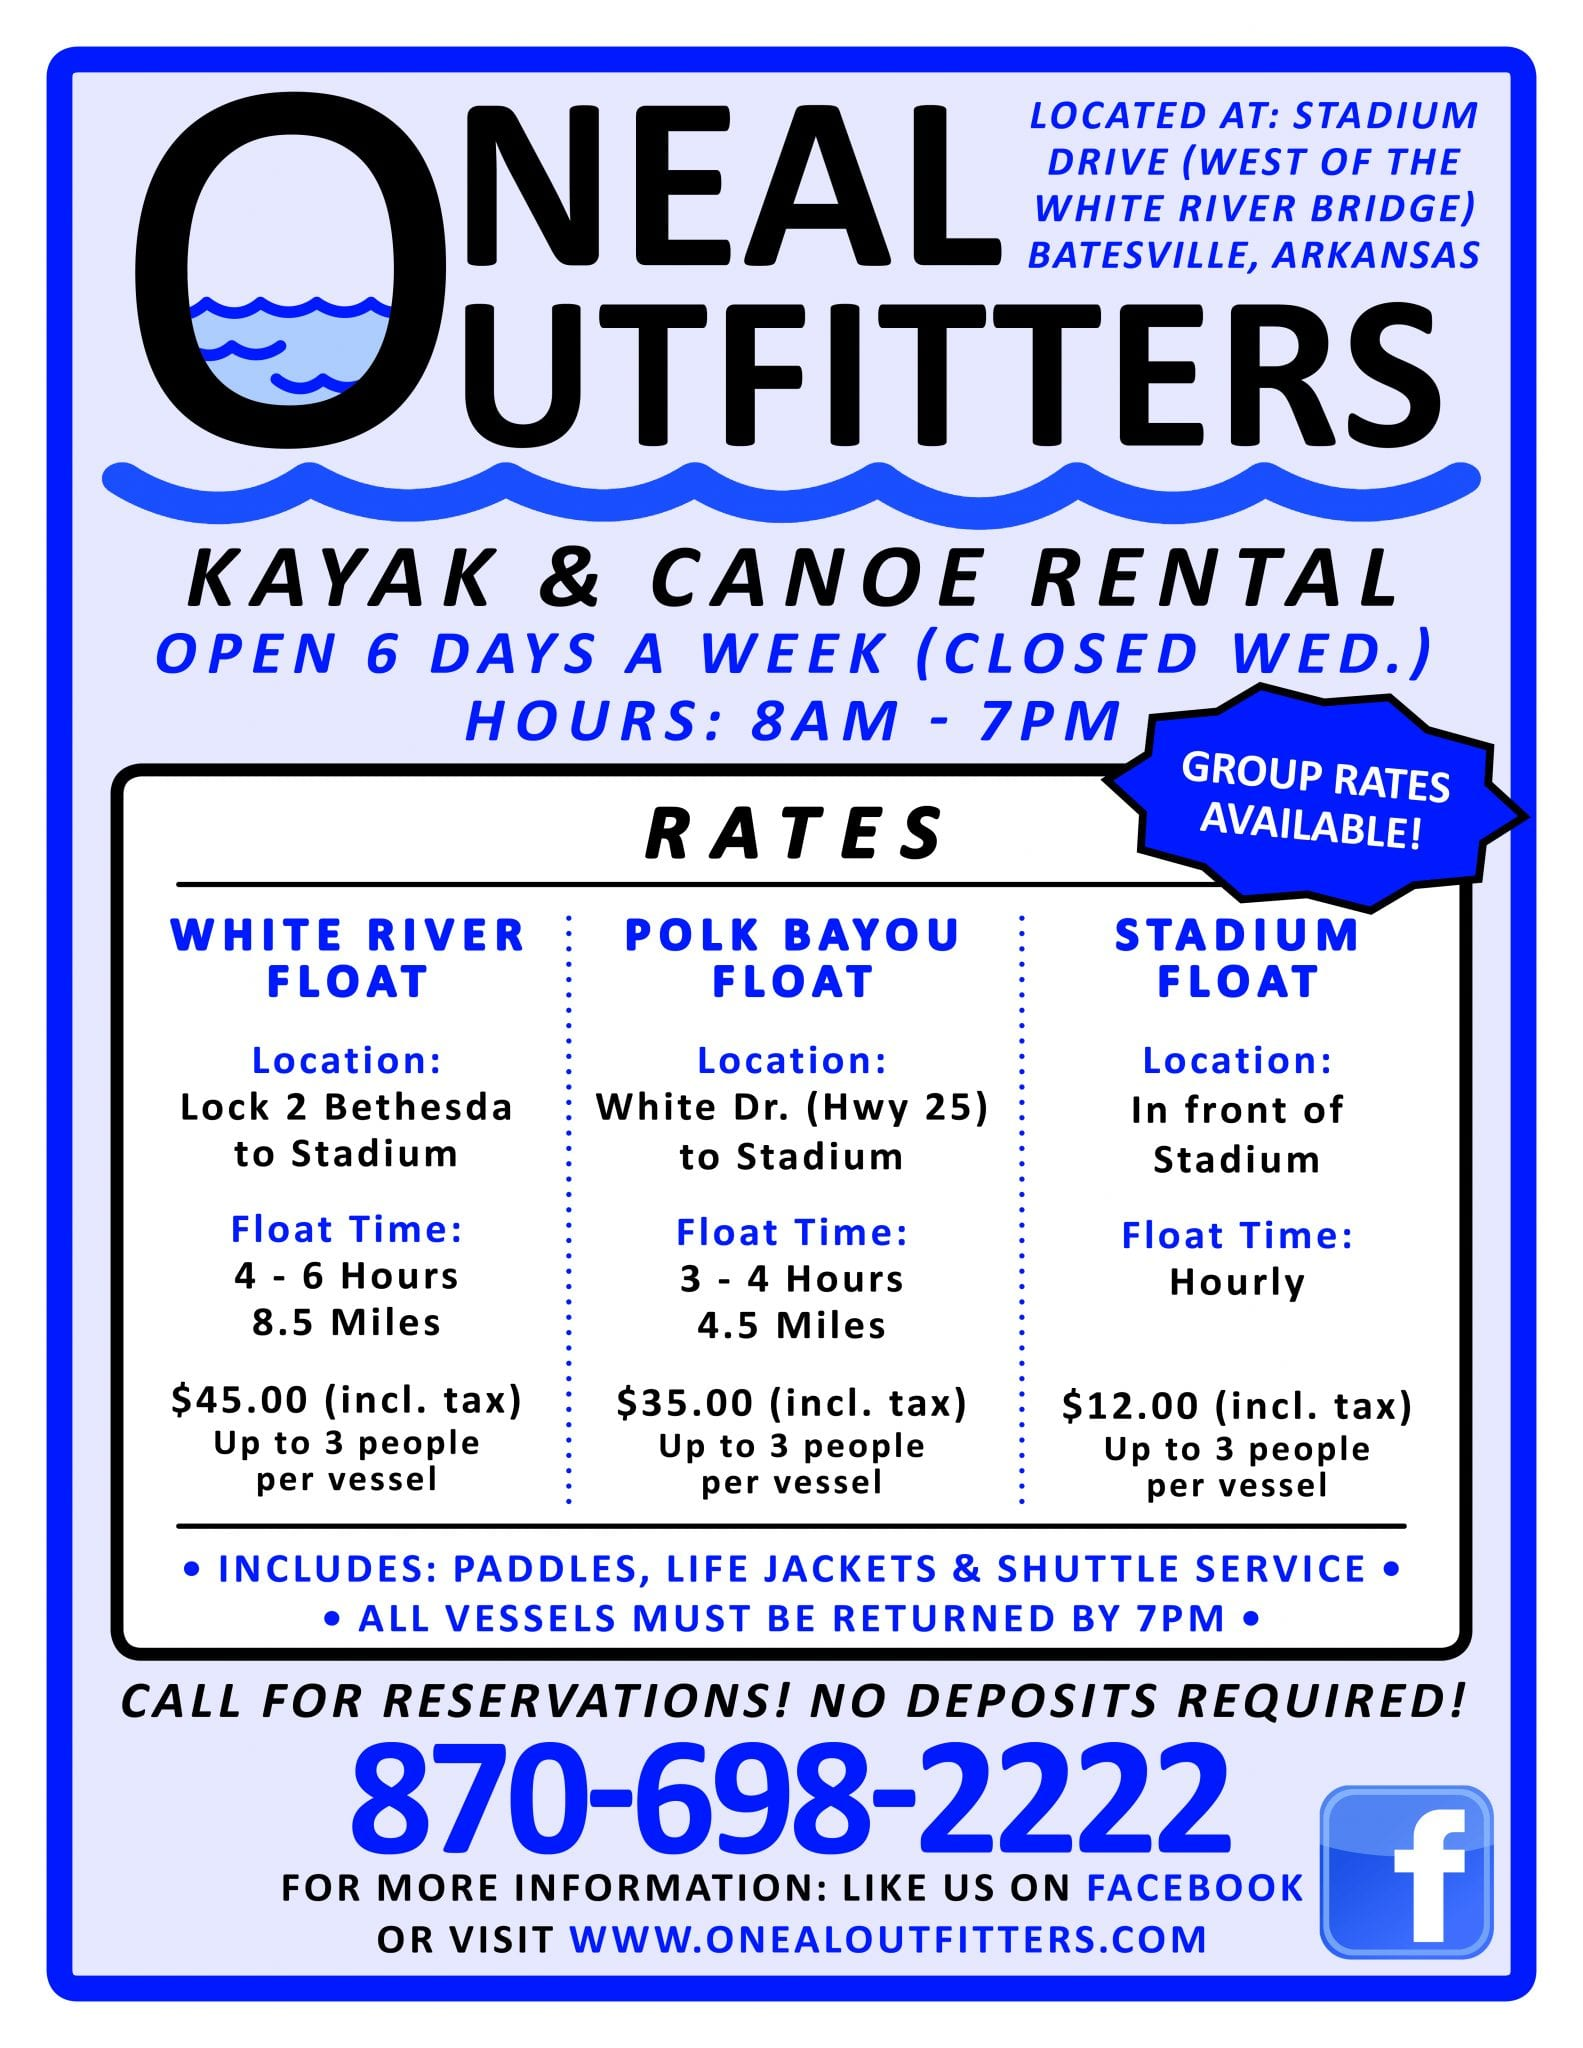 Oneal Outfitters Recently Opened at Batesville! Canoeing